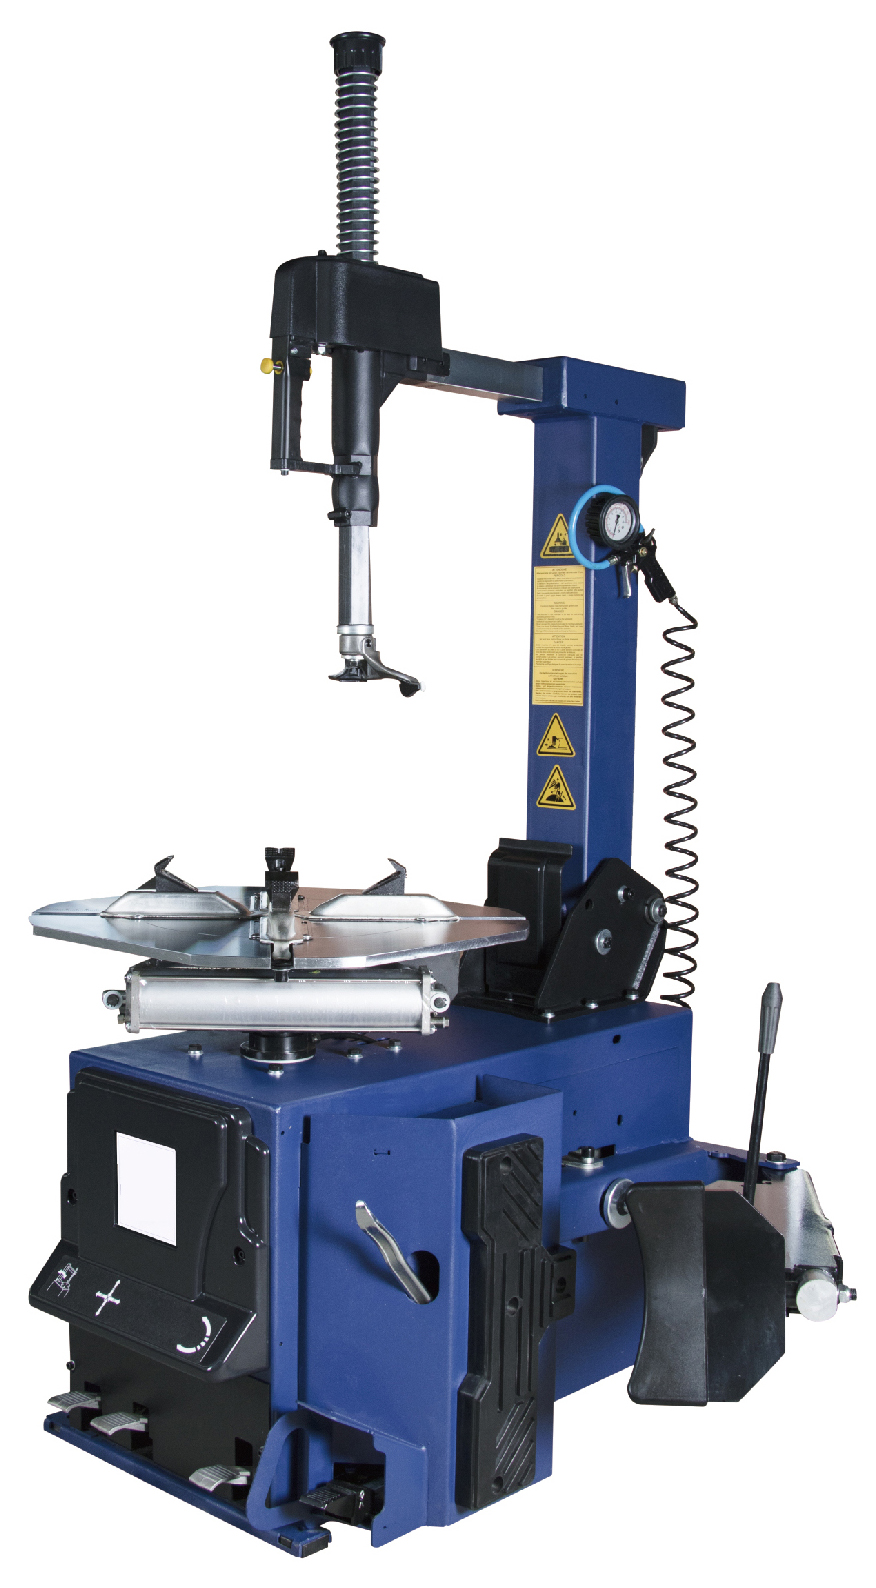 RH-850C Italy Tech Tyre Changer Machine Car Tire Changer Featured Image